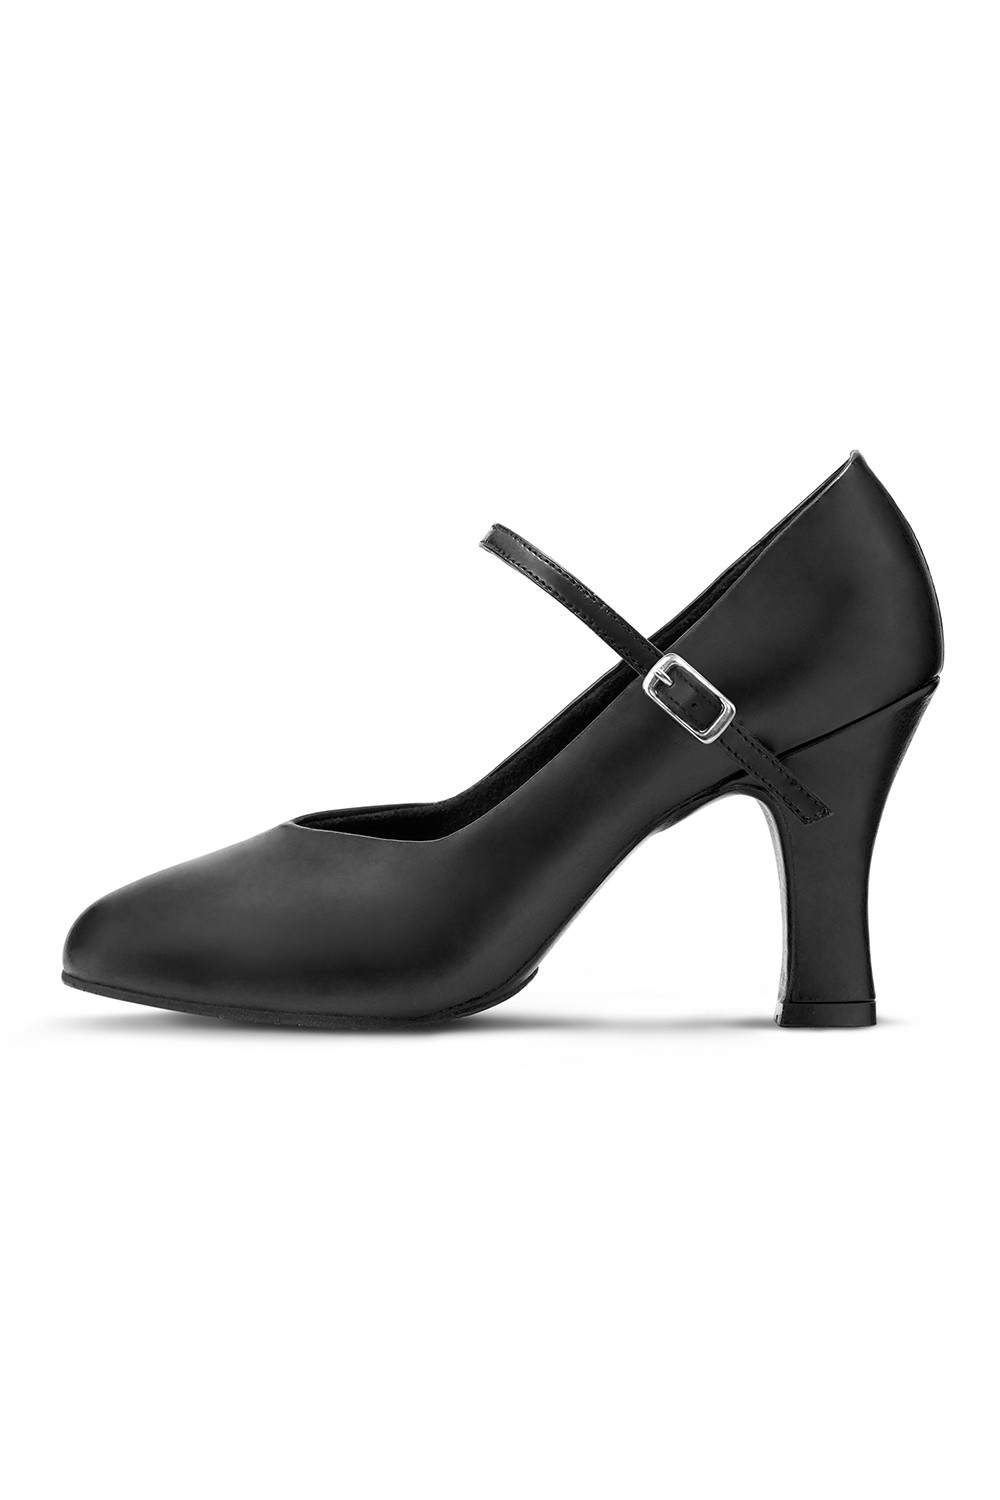 Broadway - Alta Women's Character Shoes